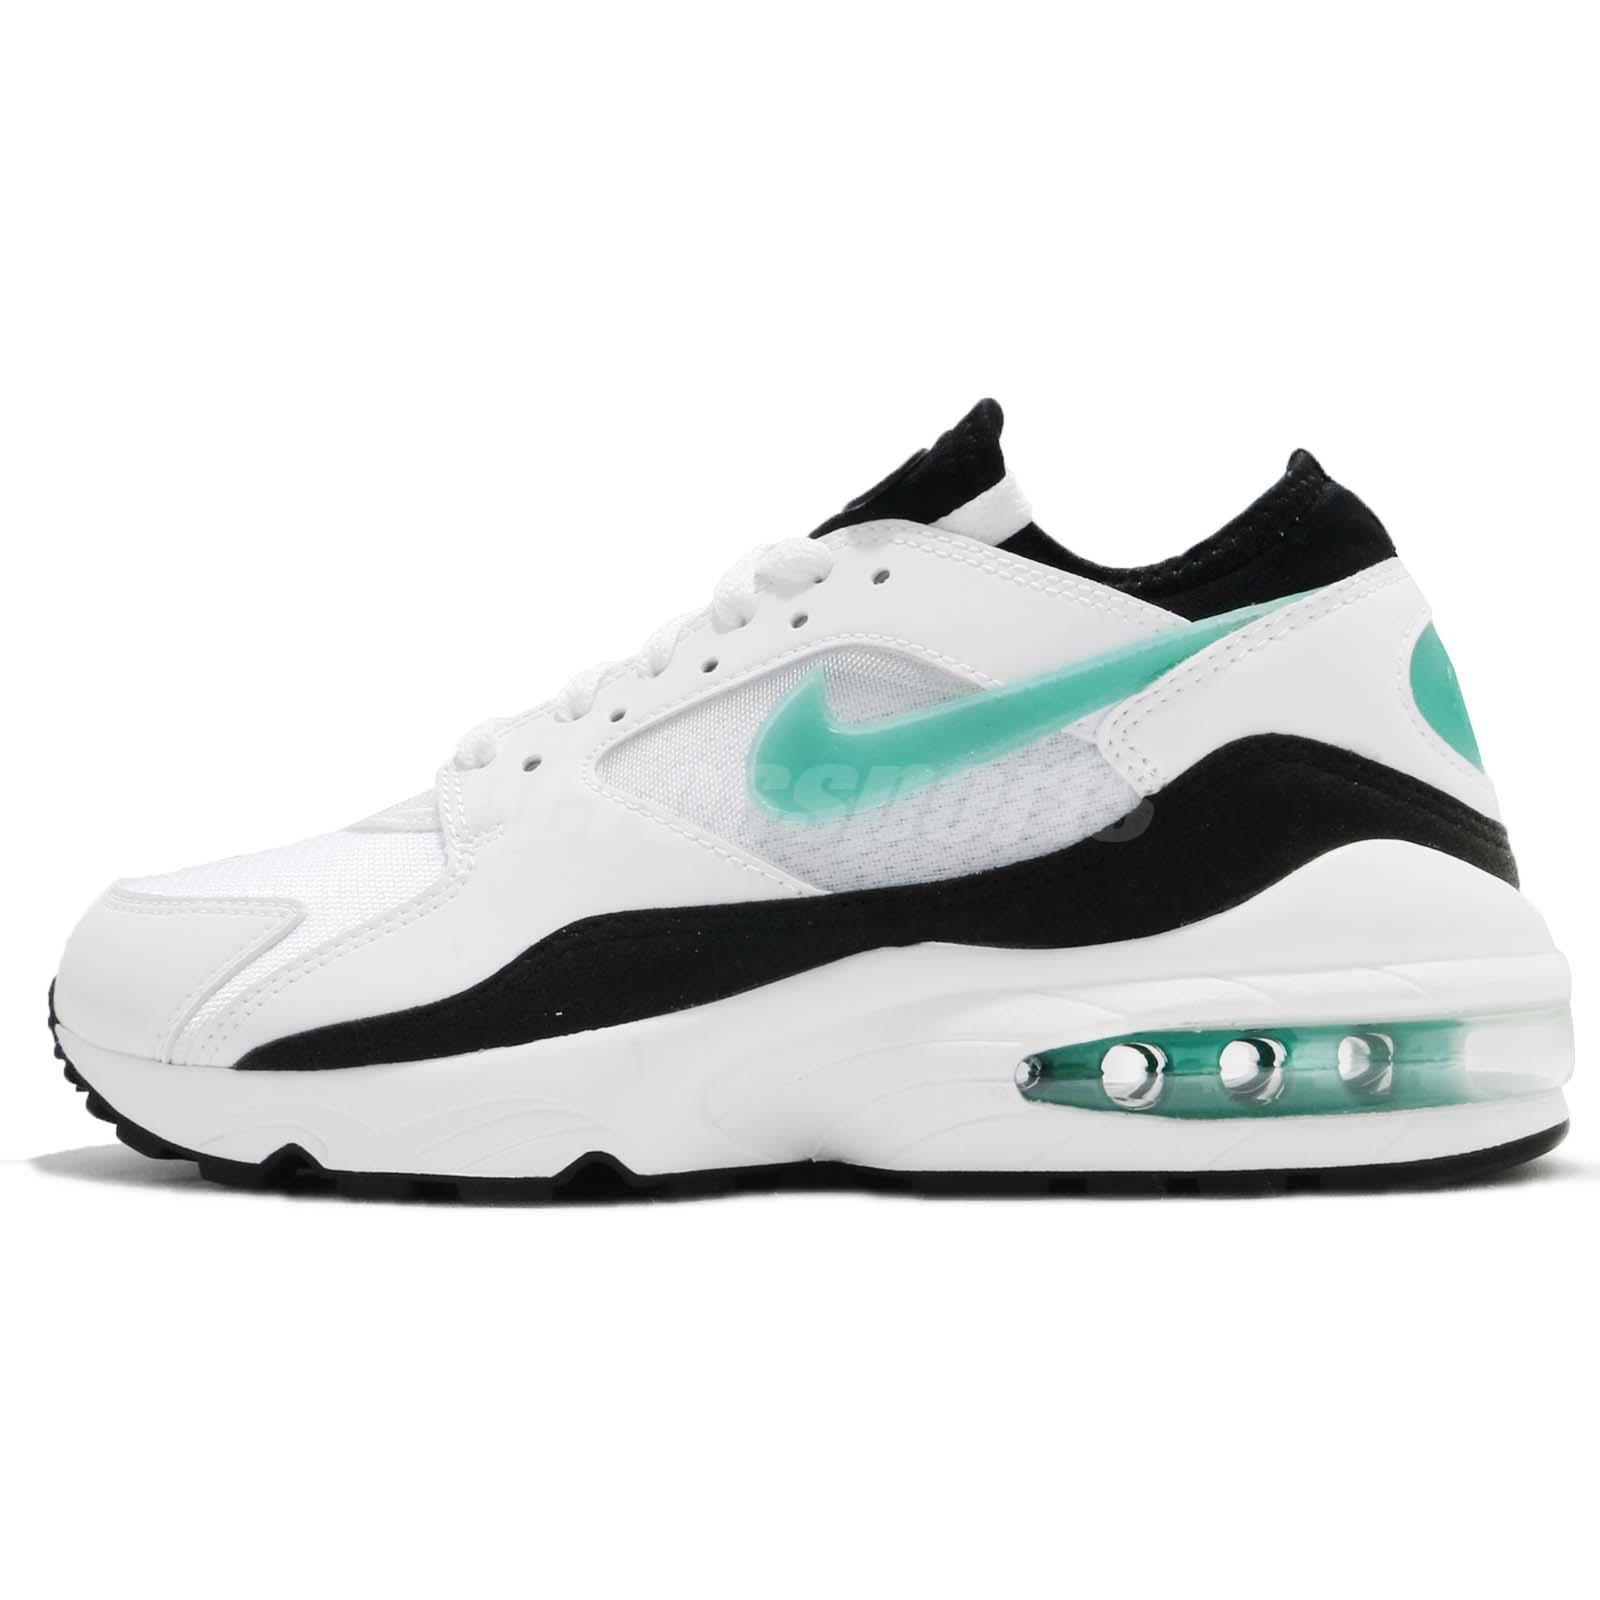 Nike Wmns Air Max 93 OG White Turquiose Dusty Cactus 2018 Women Shoes  307167-100